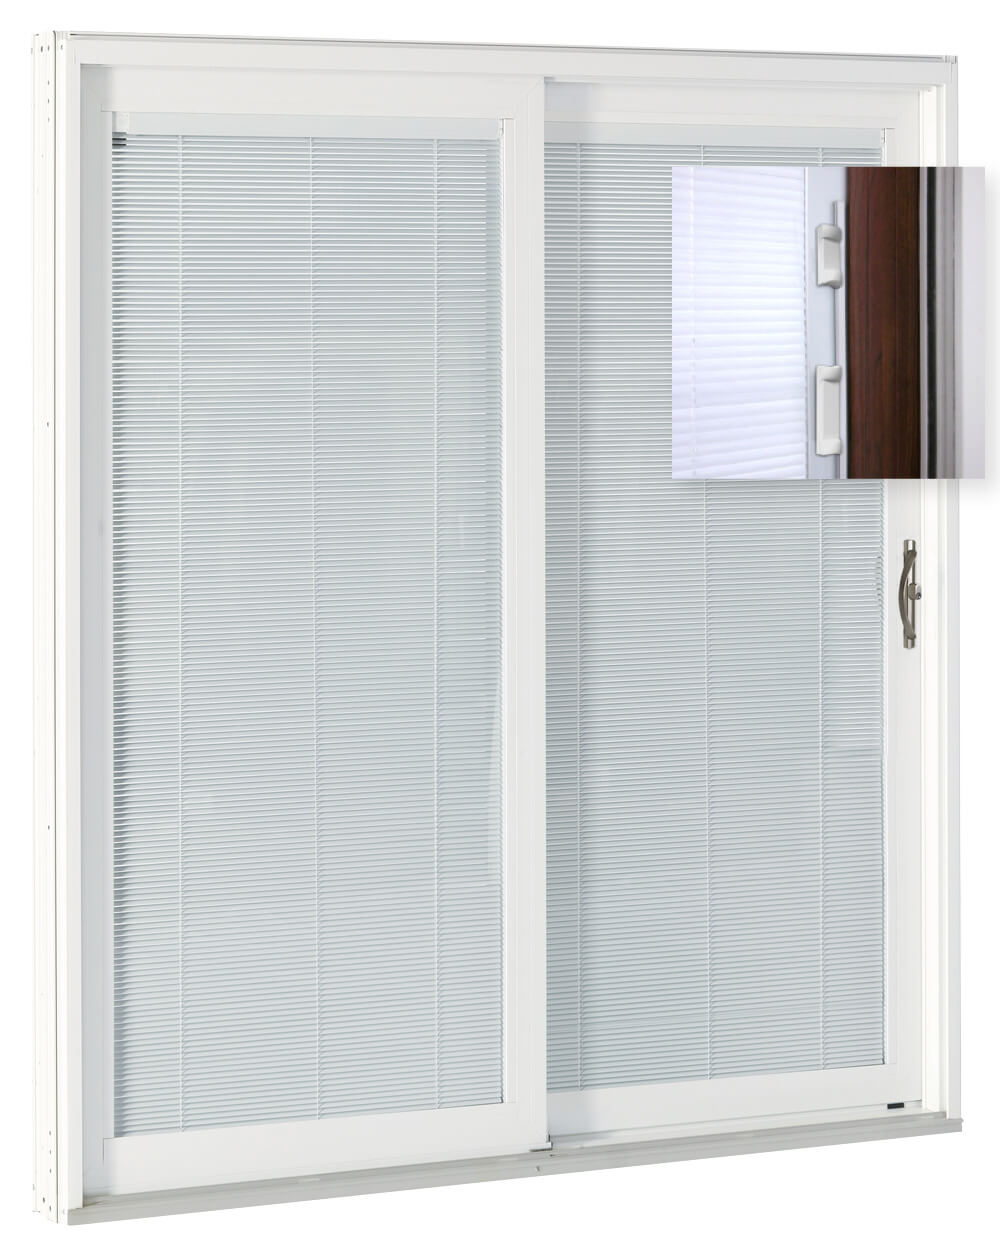 SLIDING PATIO DOORS WITH BUILT IN BLINDS INTERNAL FOR MAXIMUM PRIVACY